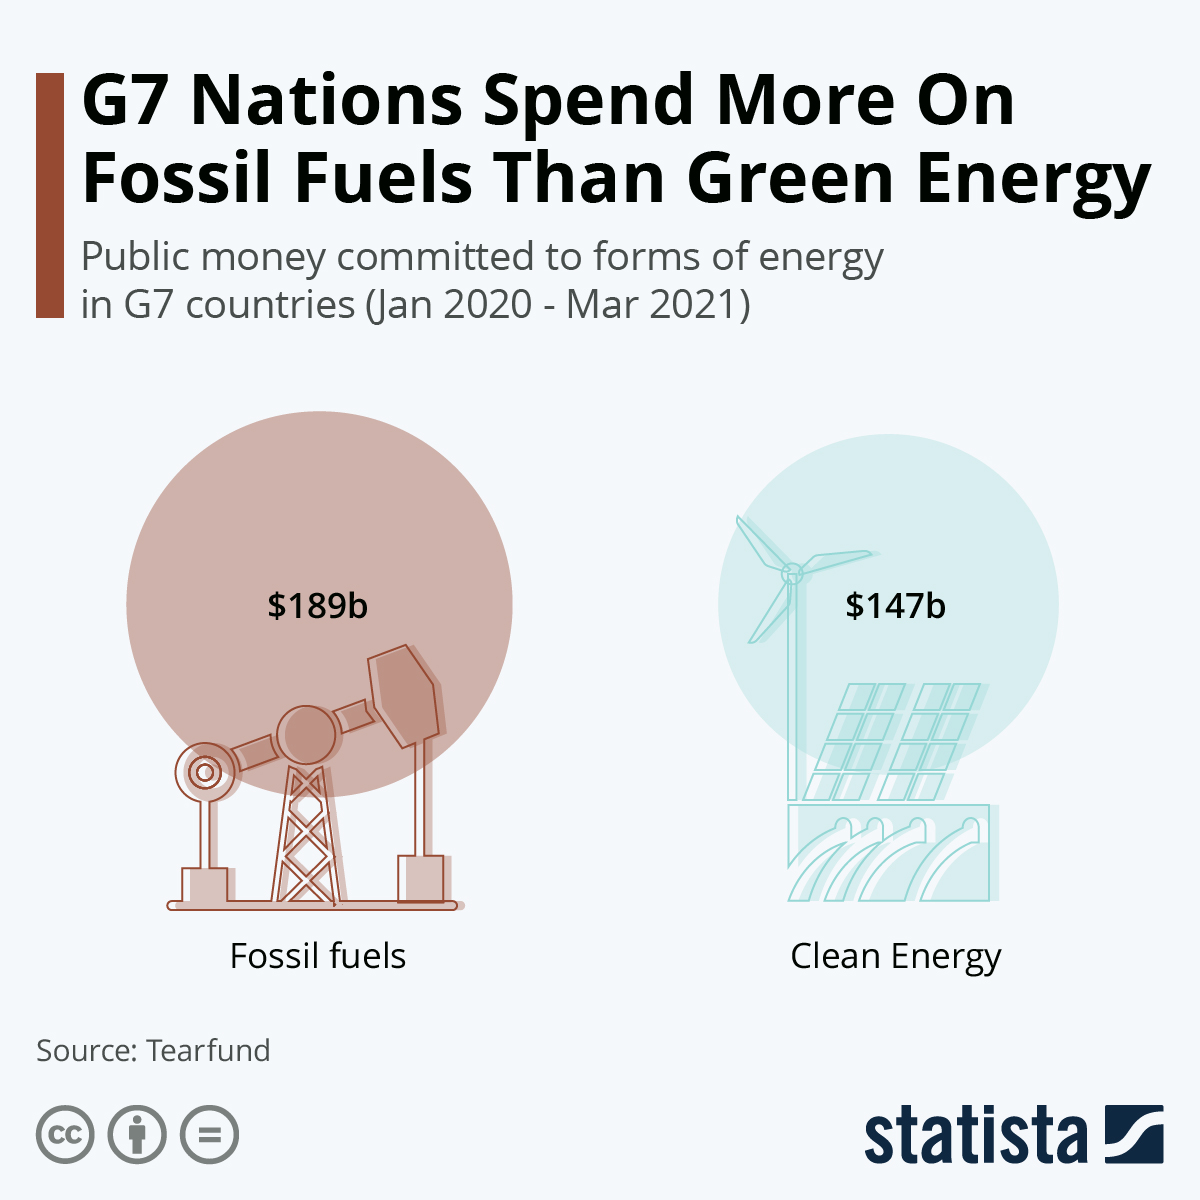 G7 Nations Spend More On Fossil Fuels Than Green Energy